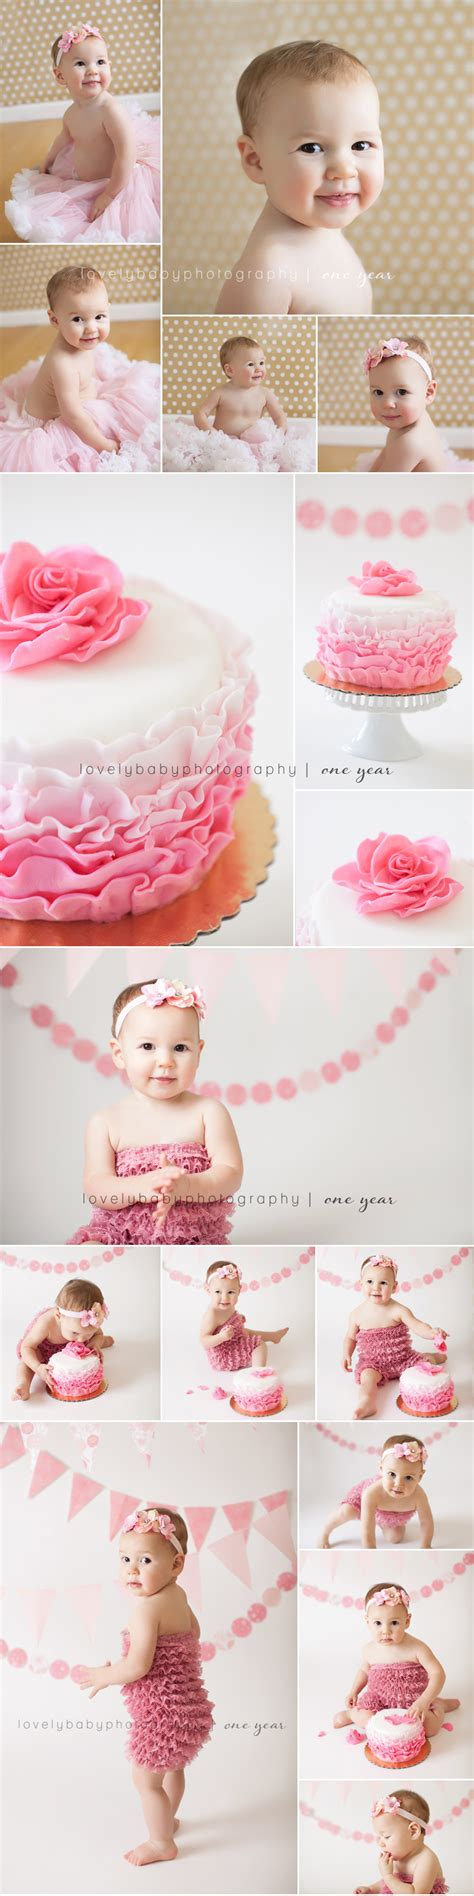 Cake Smash and First Birthday Pictures on Pinterest | Cake ...